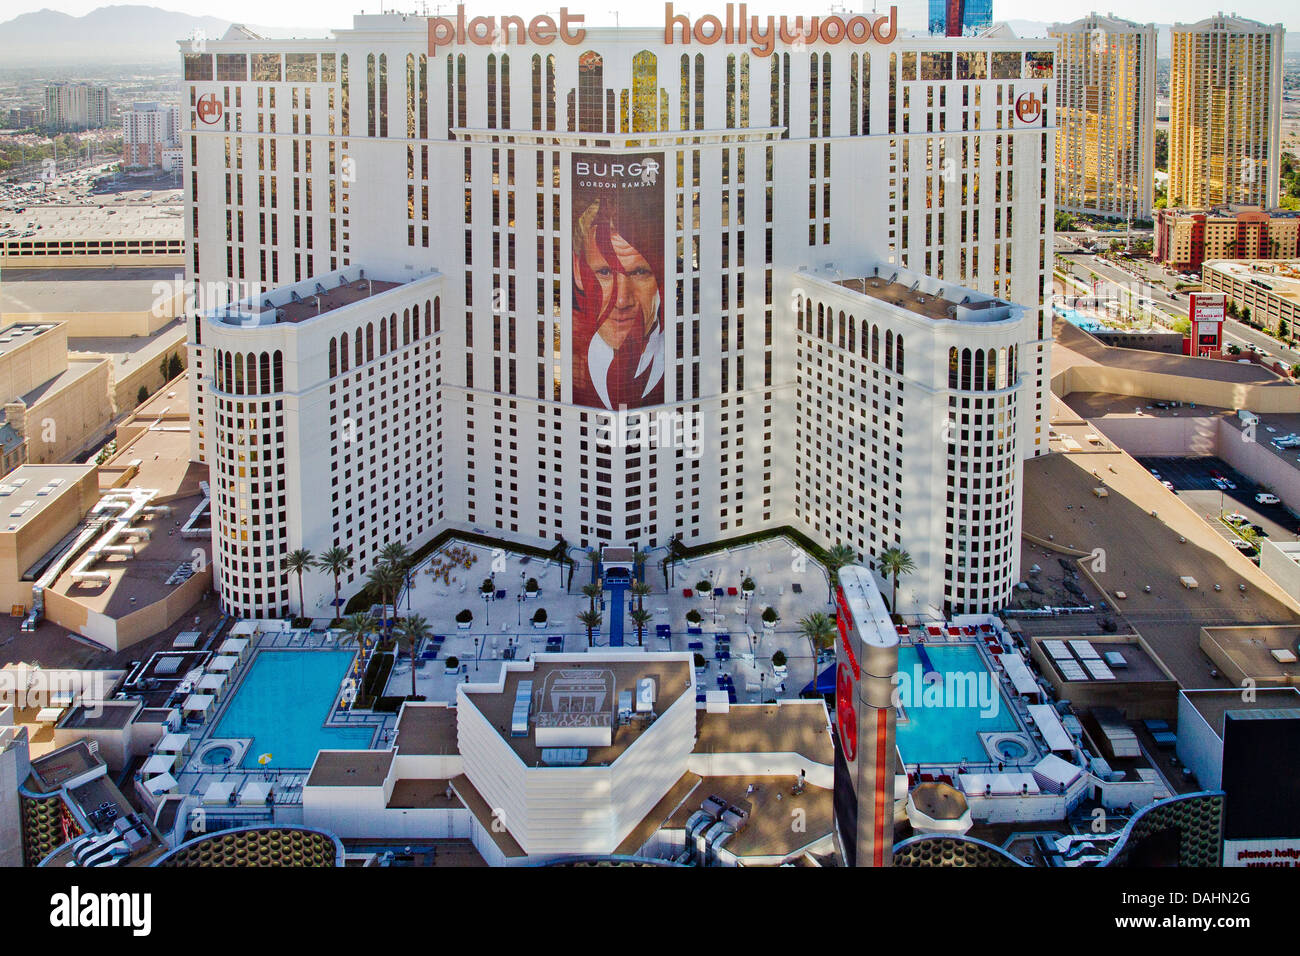 Planet Hollywood Las Vegas Hotel High Resolution Stock Photography And Images Alamy